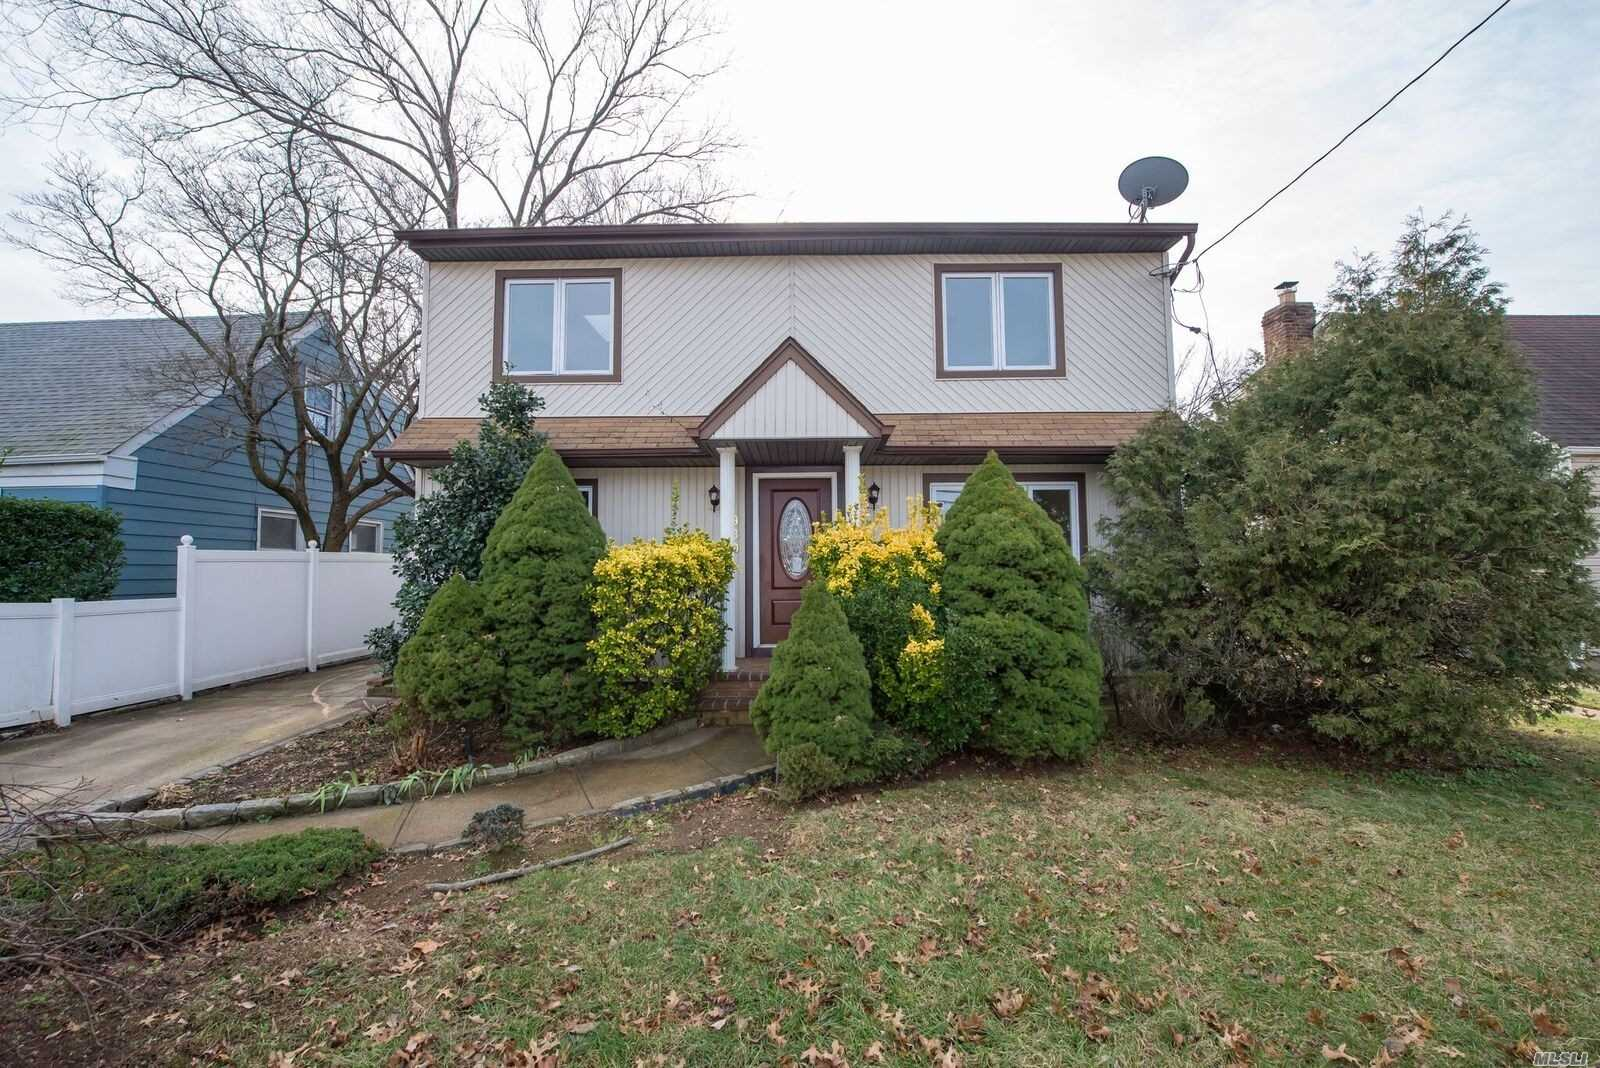 Your Next Home! Move Right In To This Lovely Residence Which Was Totally Redone. New St Steel Appliances, Built-In Micowave, Quartz Counters, Pvc Fenced Property, Light And Bright! Young Boiler And Hw Heater, New Bamboo Floors, Eat In Kitchen With Slider To Covered Patio.